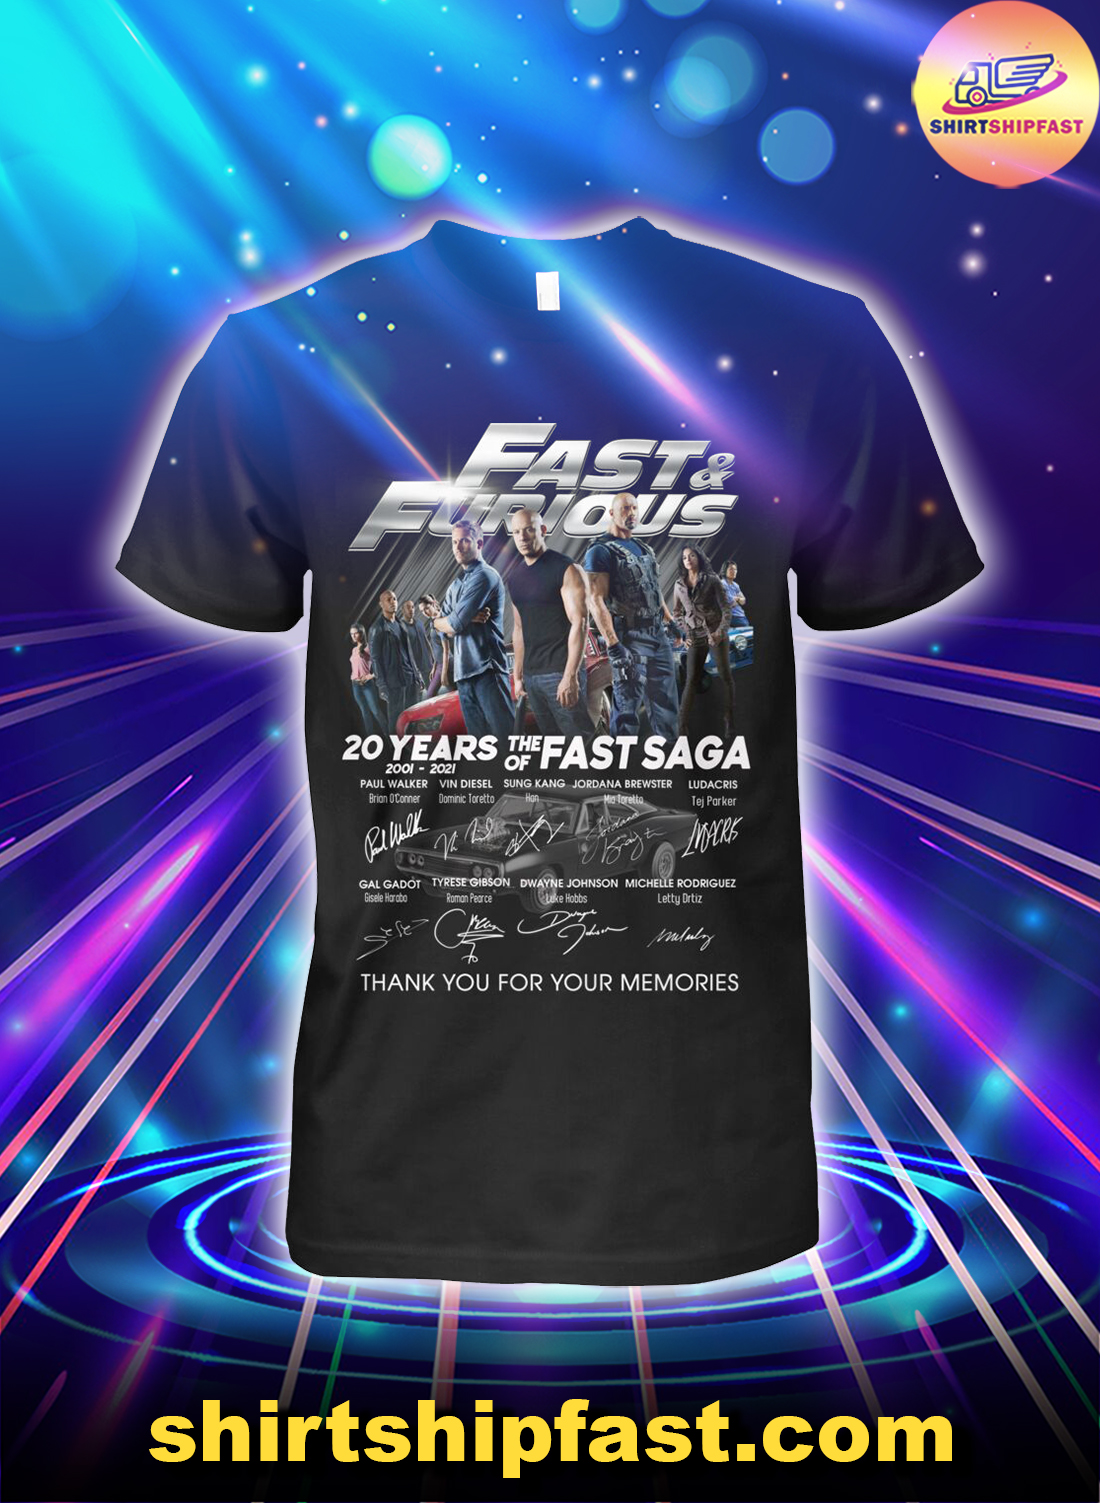 Fast & Furious 20 years of the fast saga thank you for your memories shirt